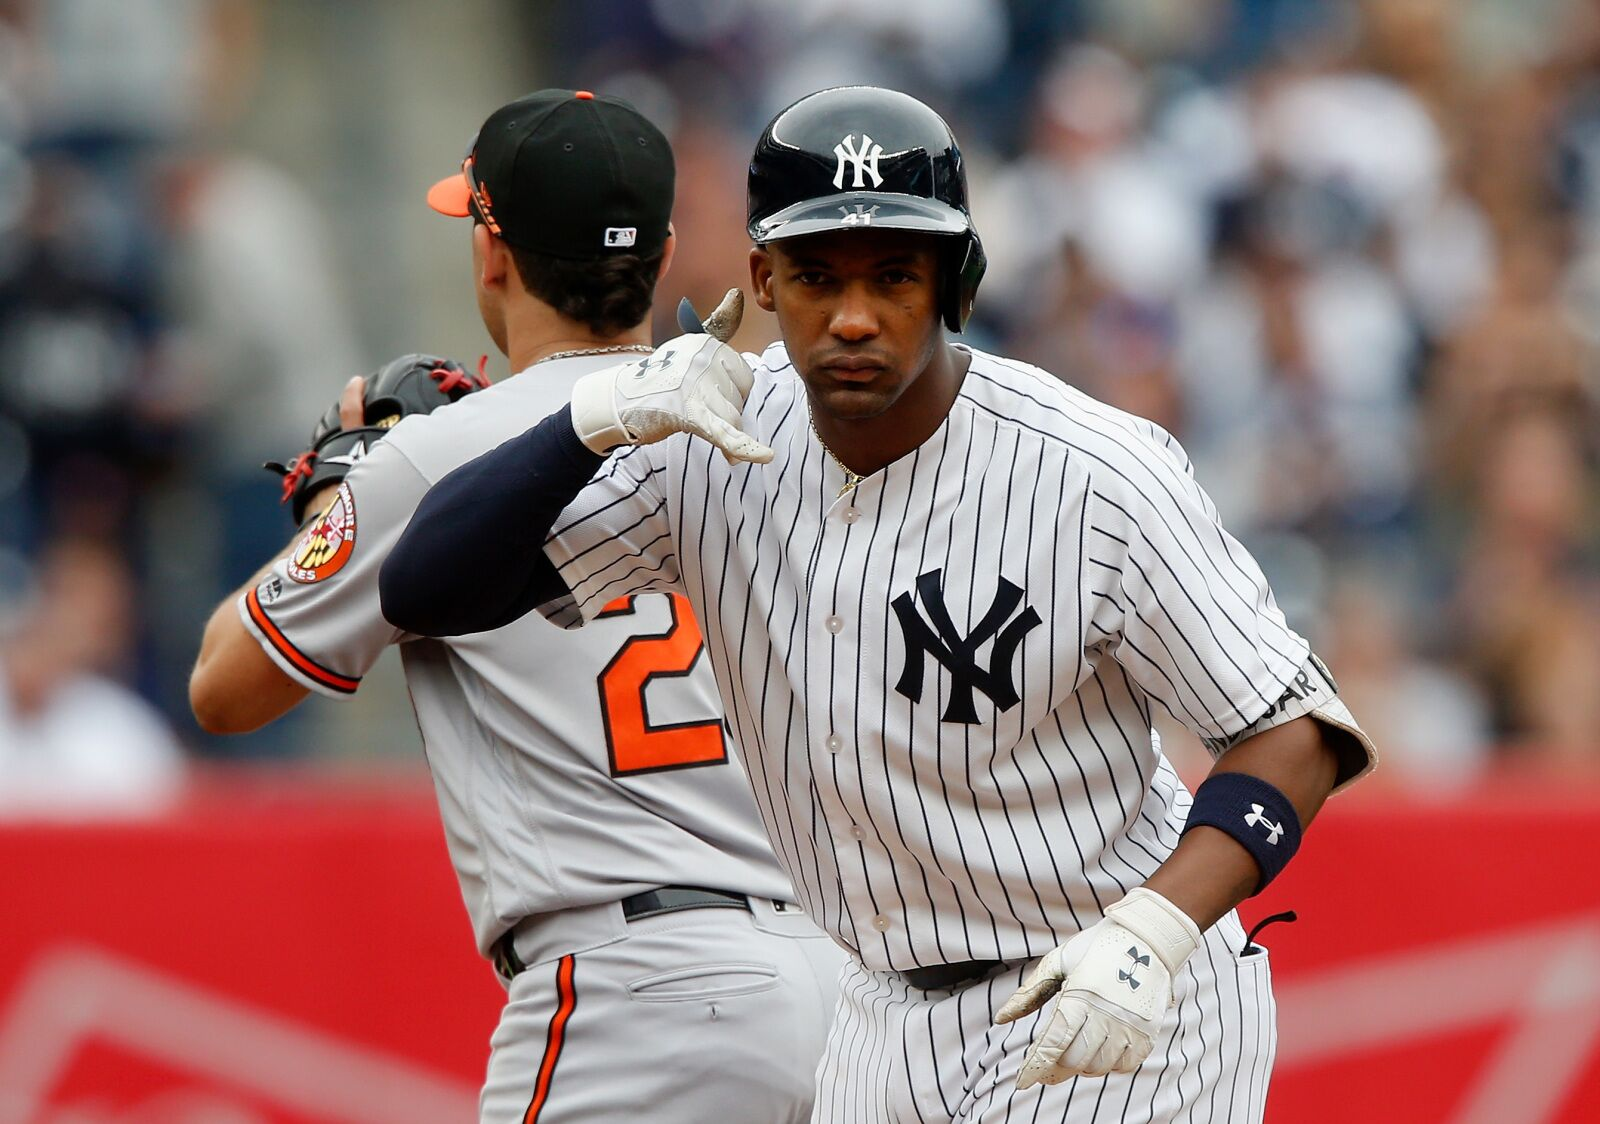 Yankees: Brian Cashman says a lot of teams have interest in trading for Miguel Andujar